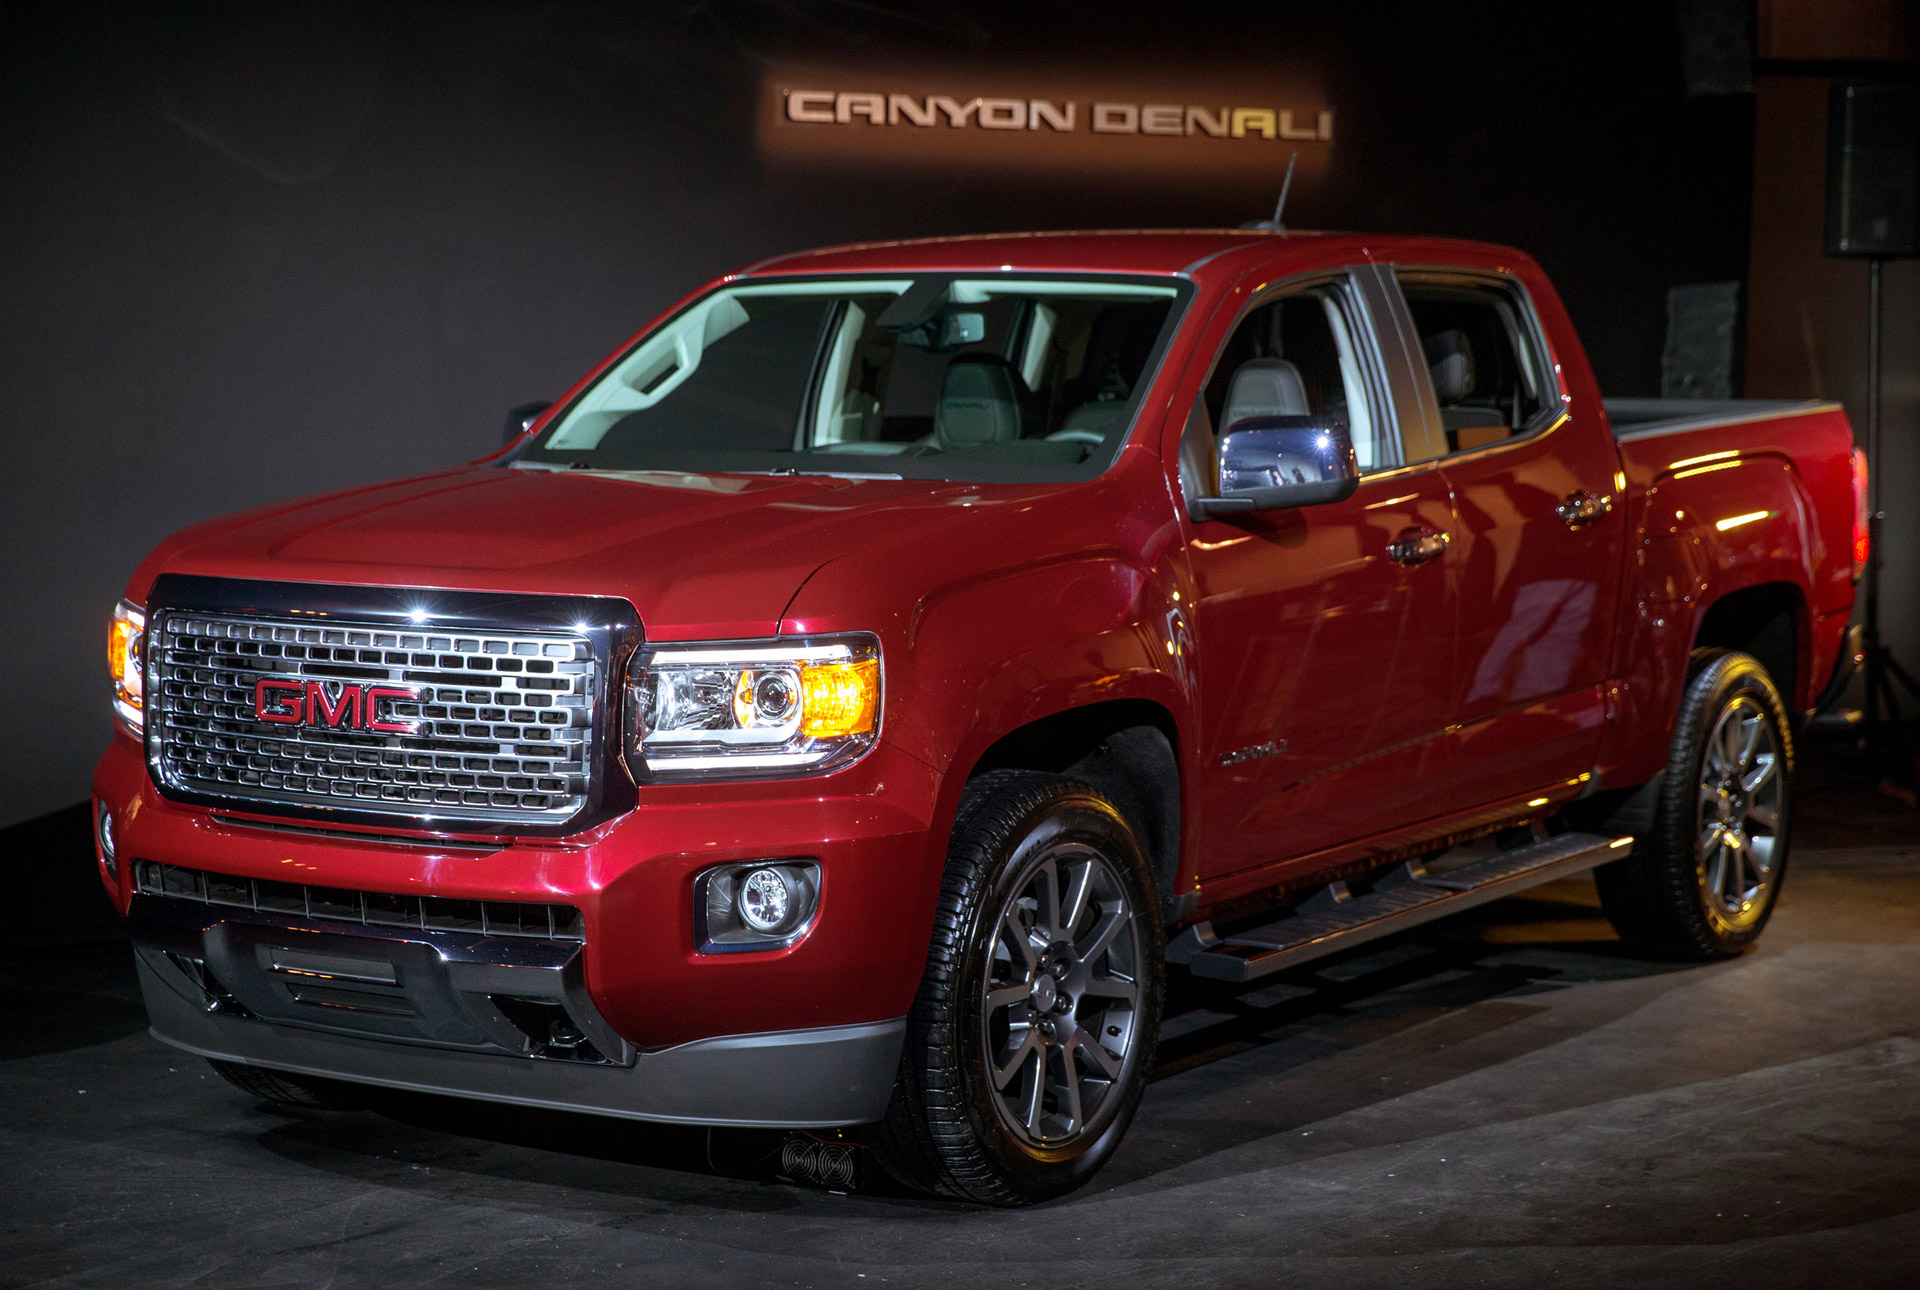 2017 gmc canyon denali drops in ahead of l a auto show. Black Bedroom Furniture Sets. Home Design Ideas